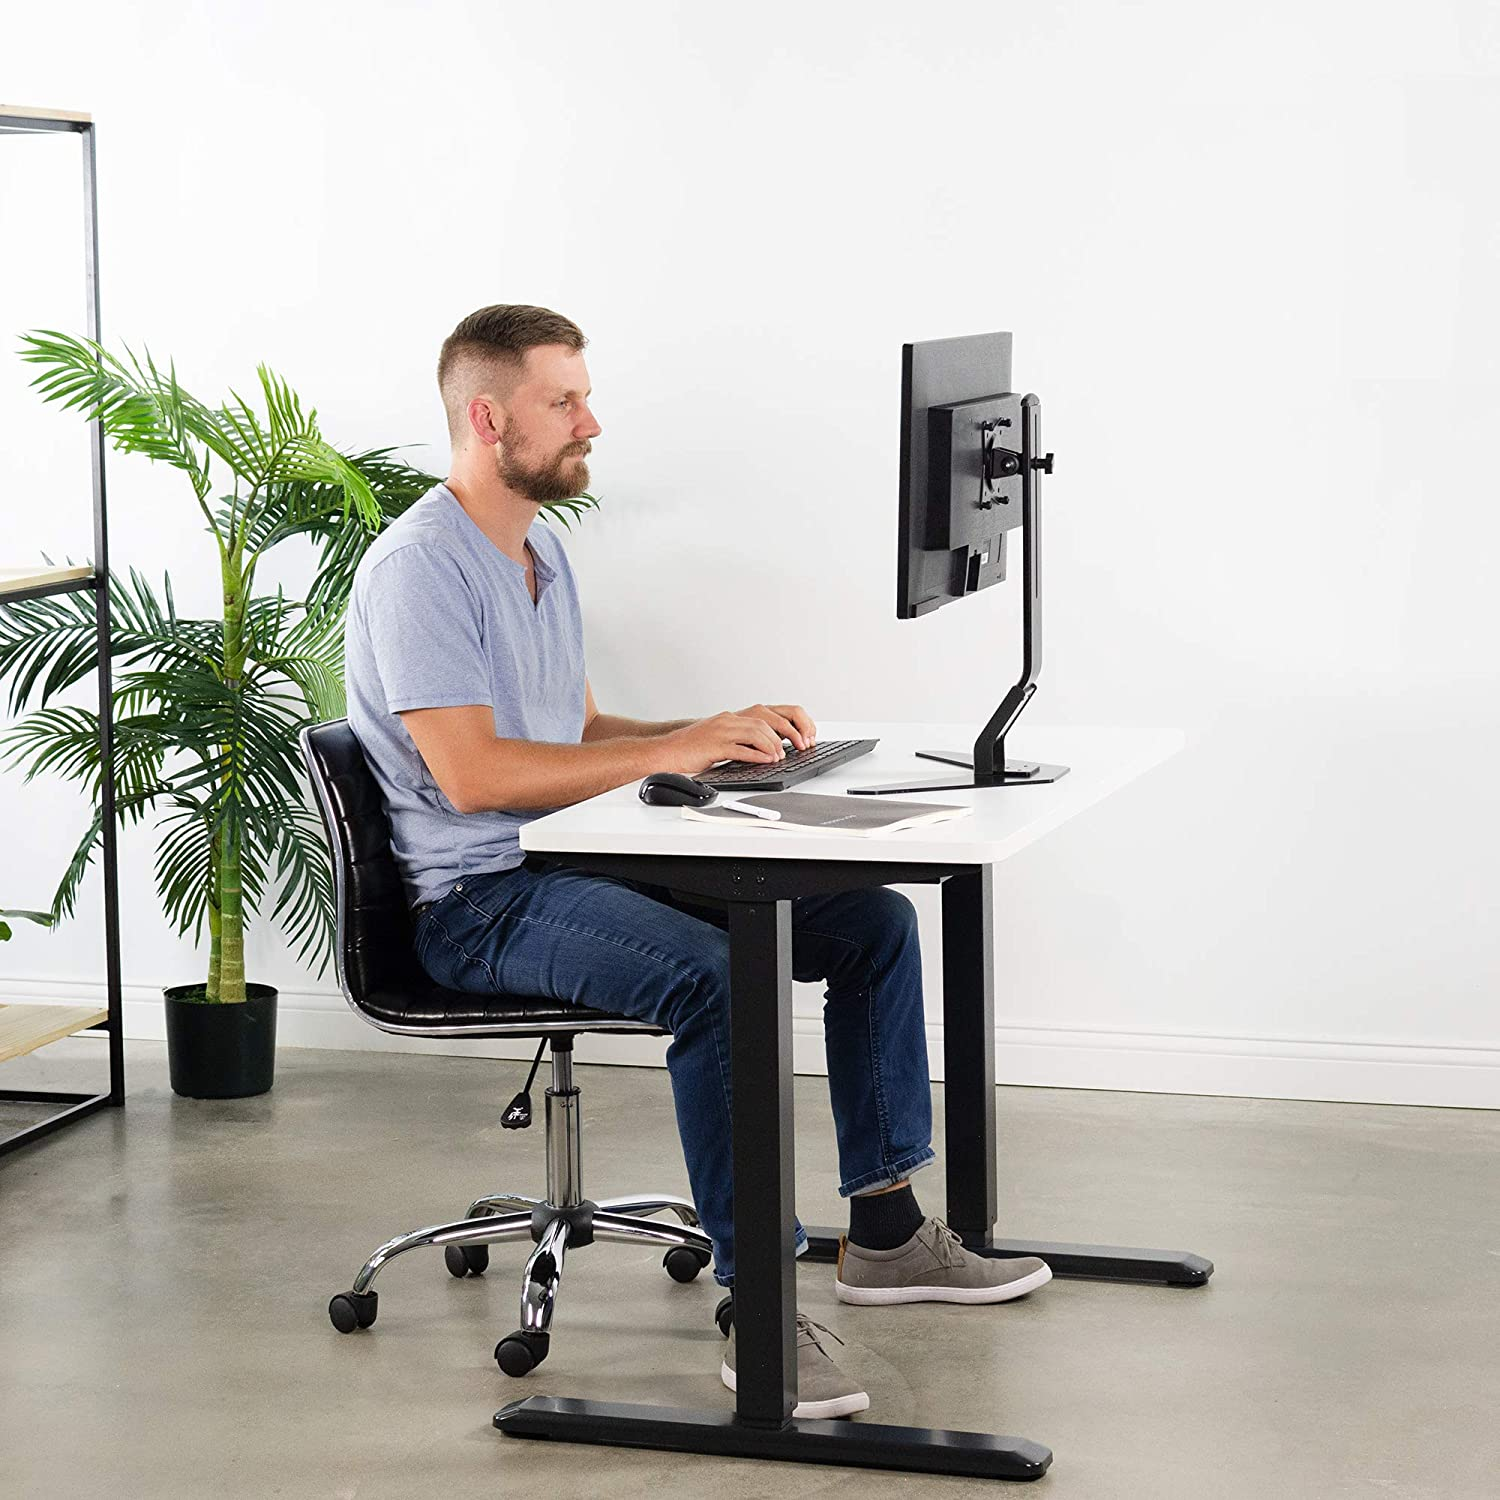 VIVO Electric 43 x 24 inch Stand Up Desk DESK-KIT-1W4B Black Table Top White Frame Height Adjustable Standing Workstation with Memory Preset Controller